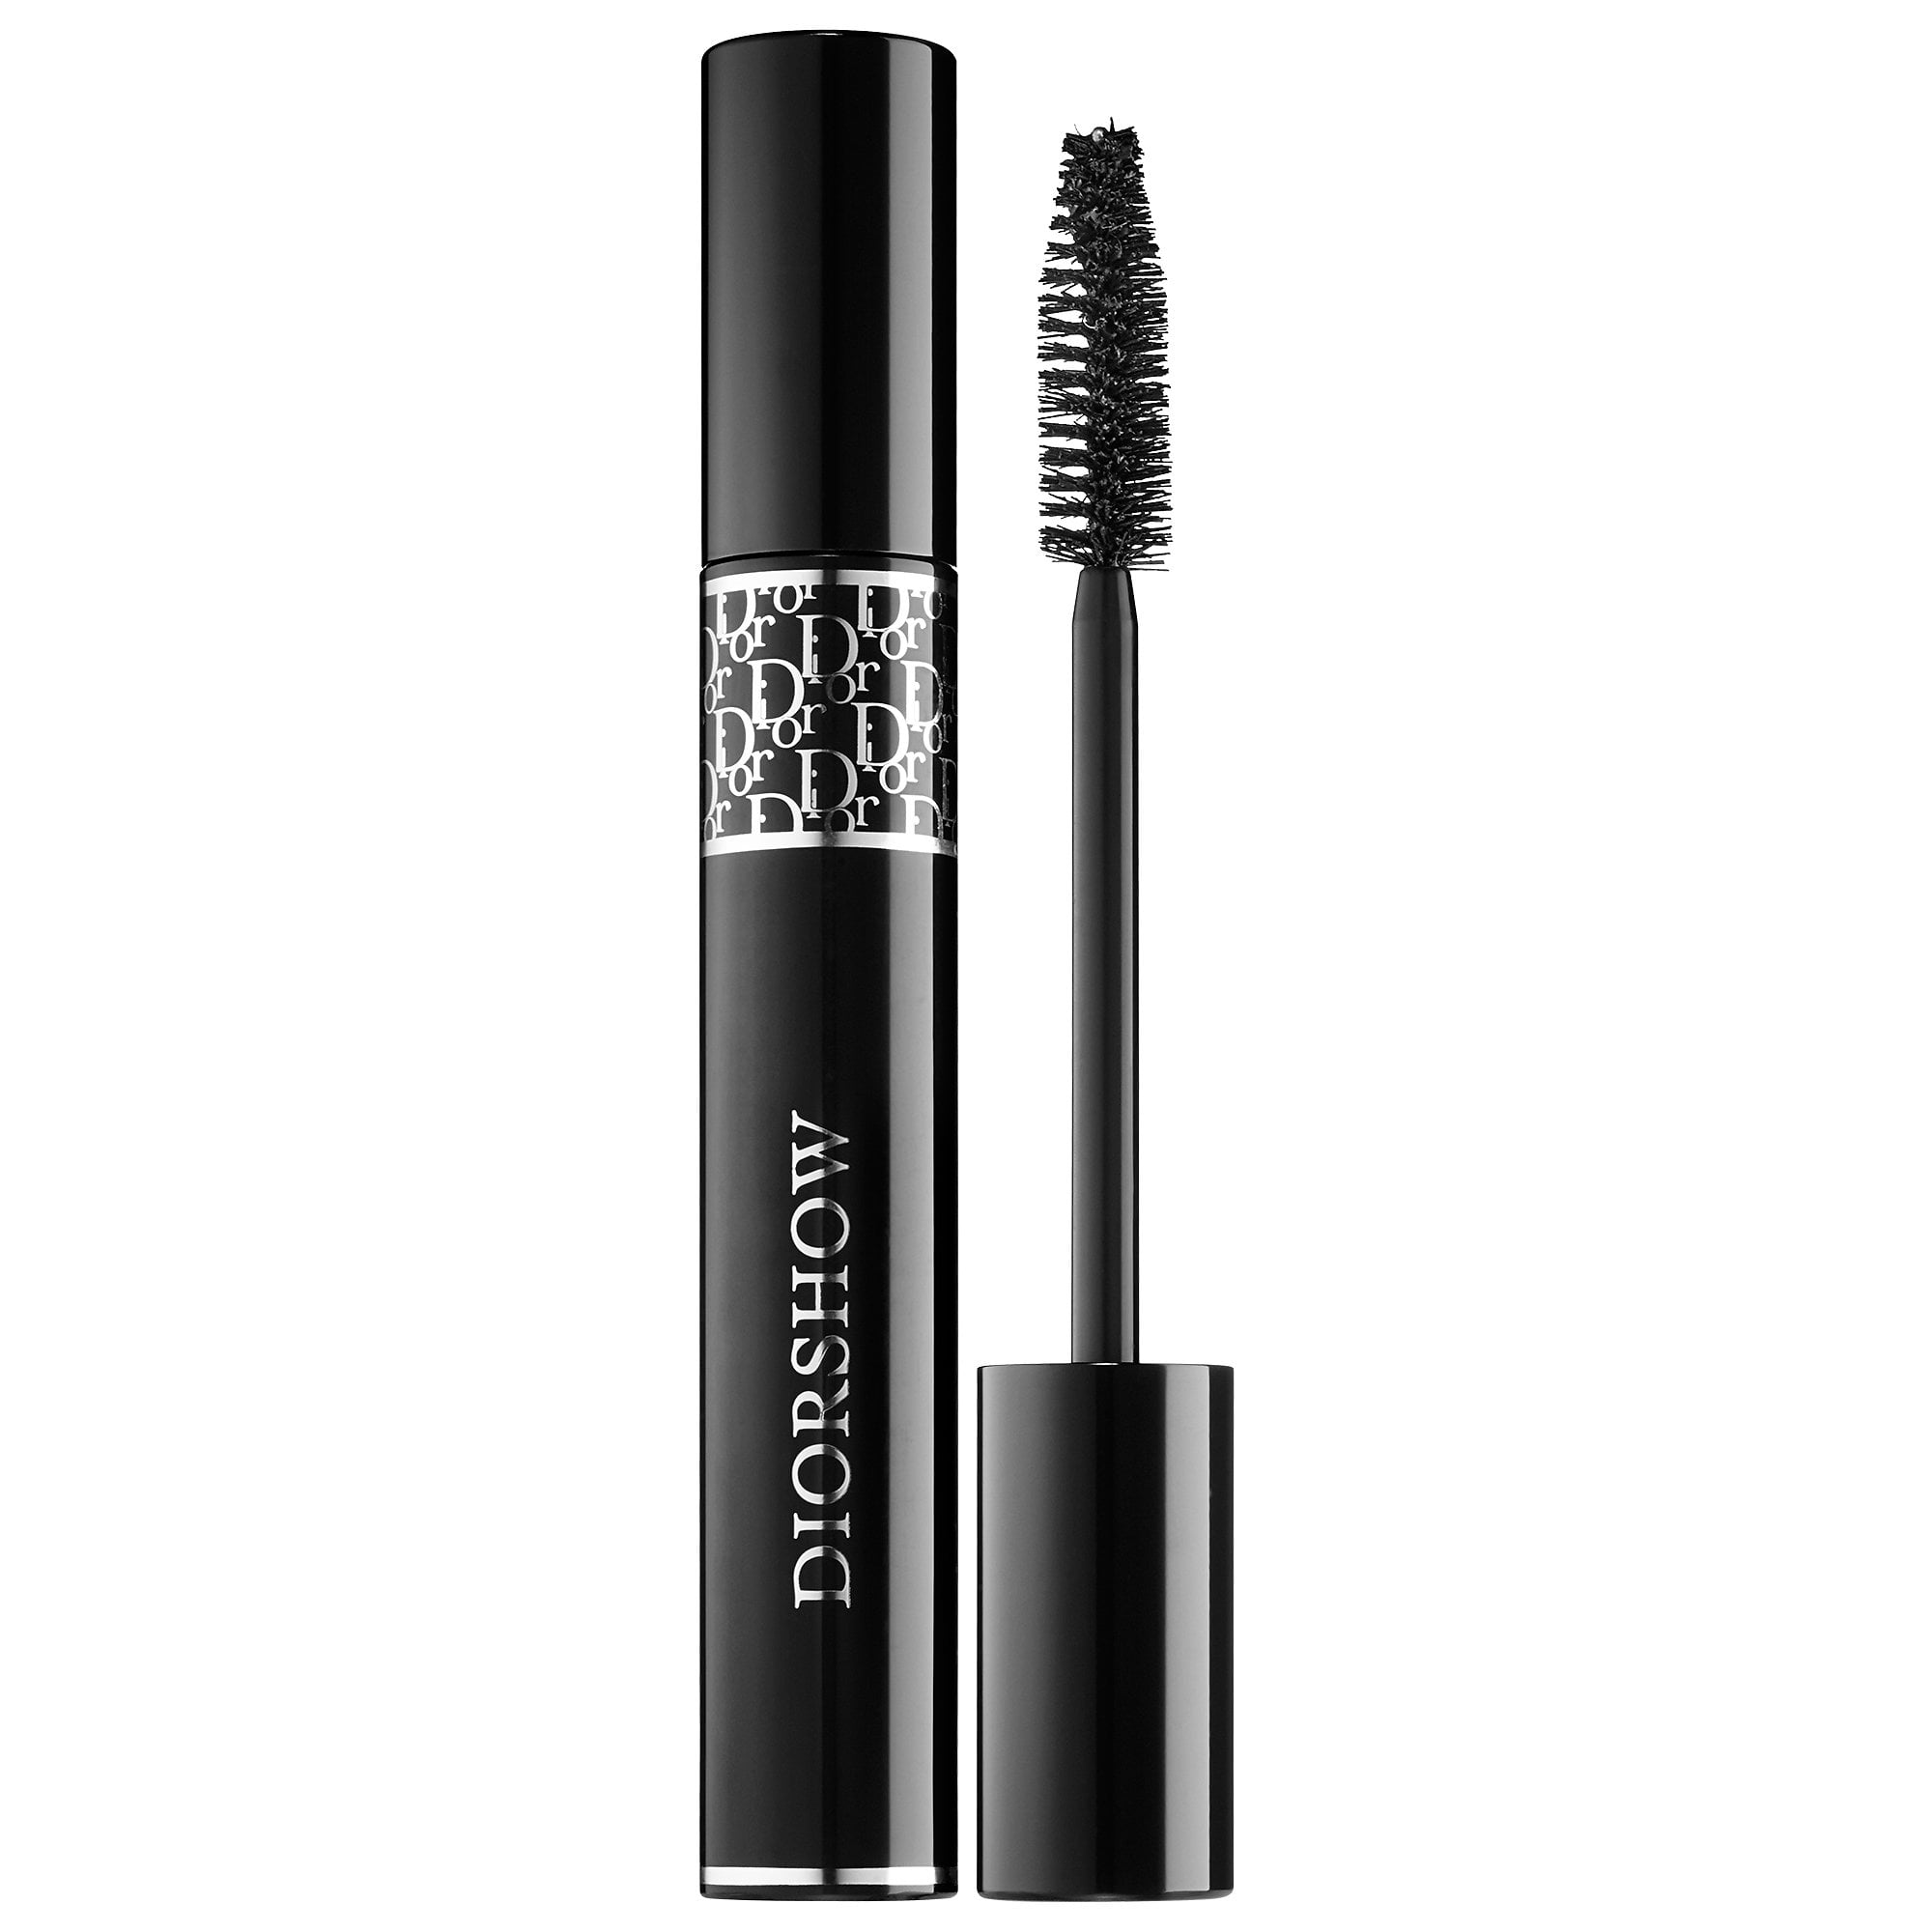 dior diorshow mascara according to beauty insiders these are the top beauty products for 2016. Black Bedroom Furniture Sets. Home Design Ideas